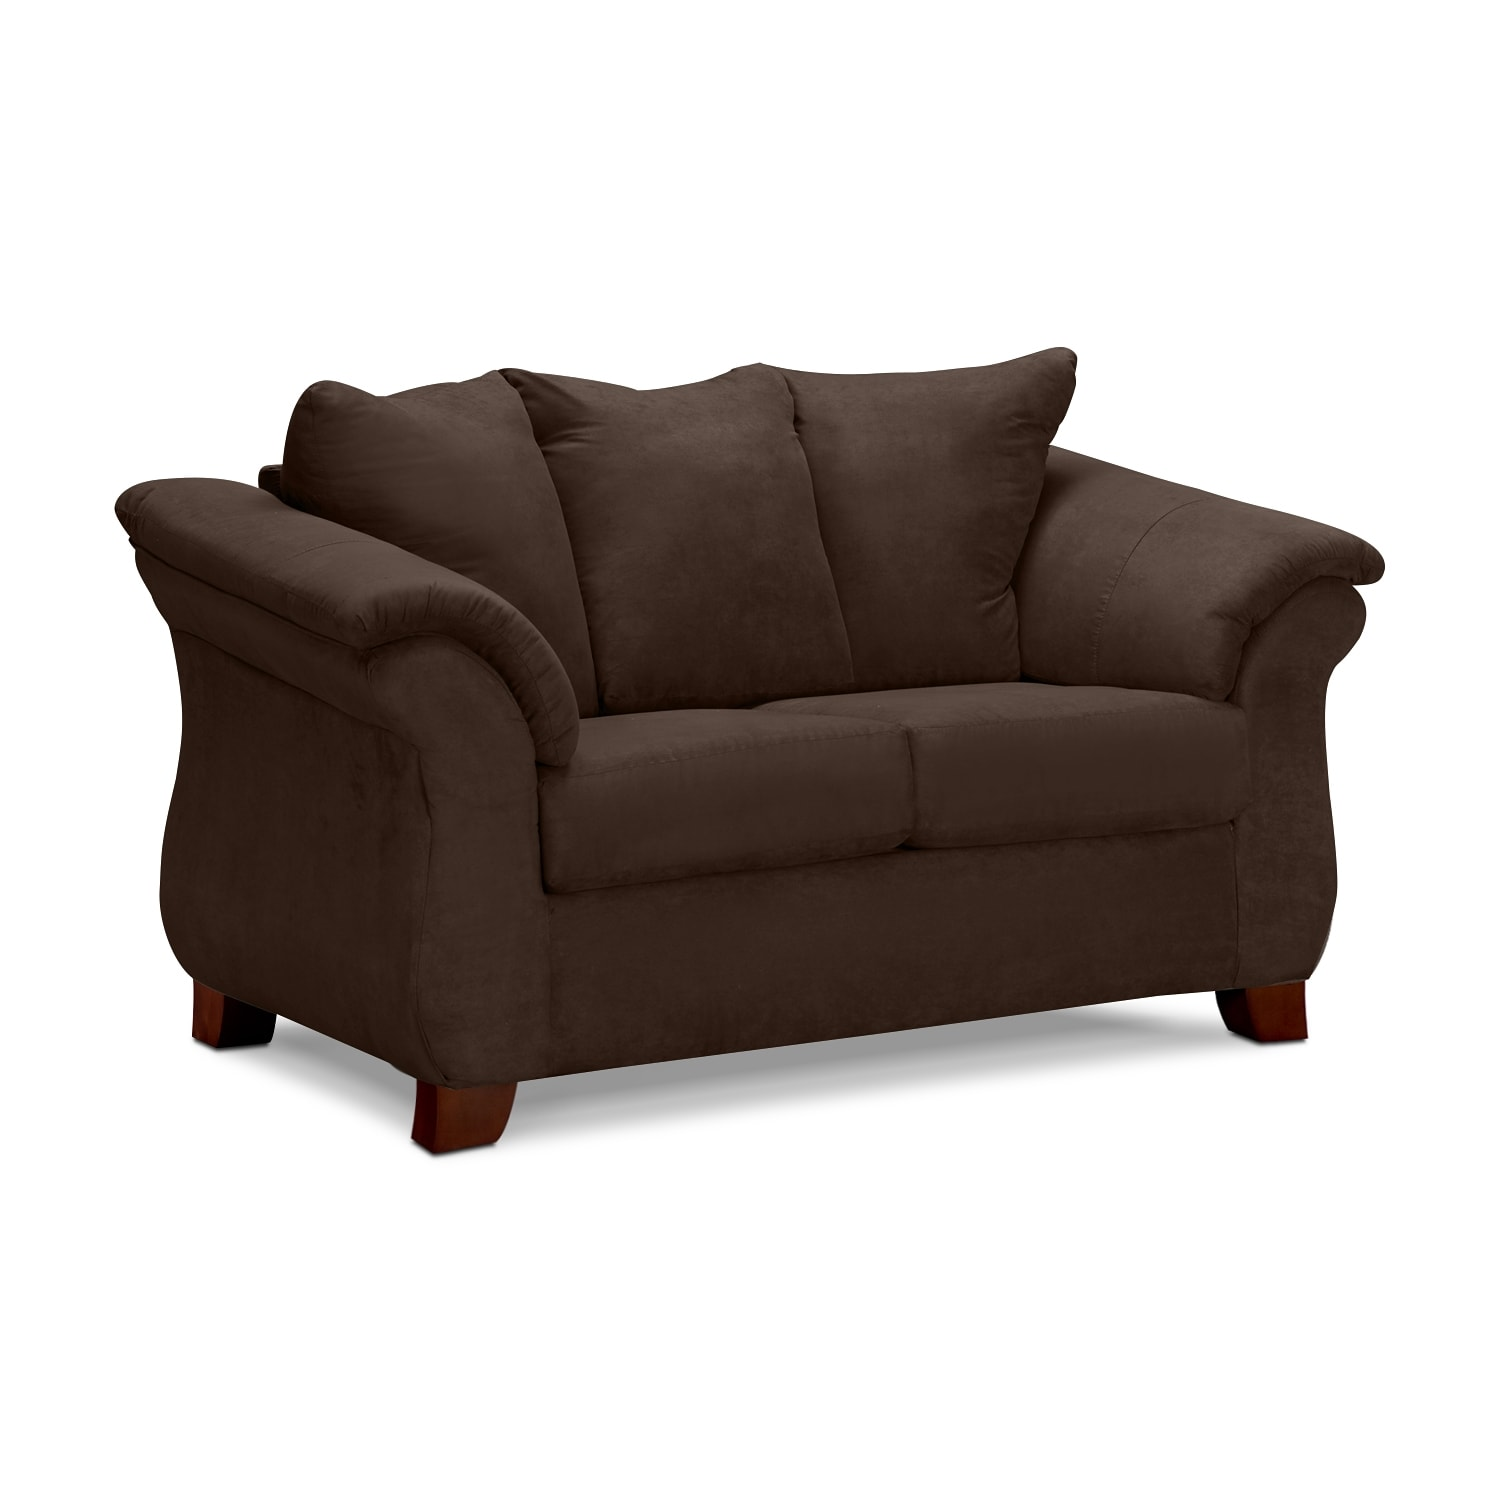 Adrian loveseat chocolate value city furniture Couches and loveseats